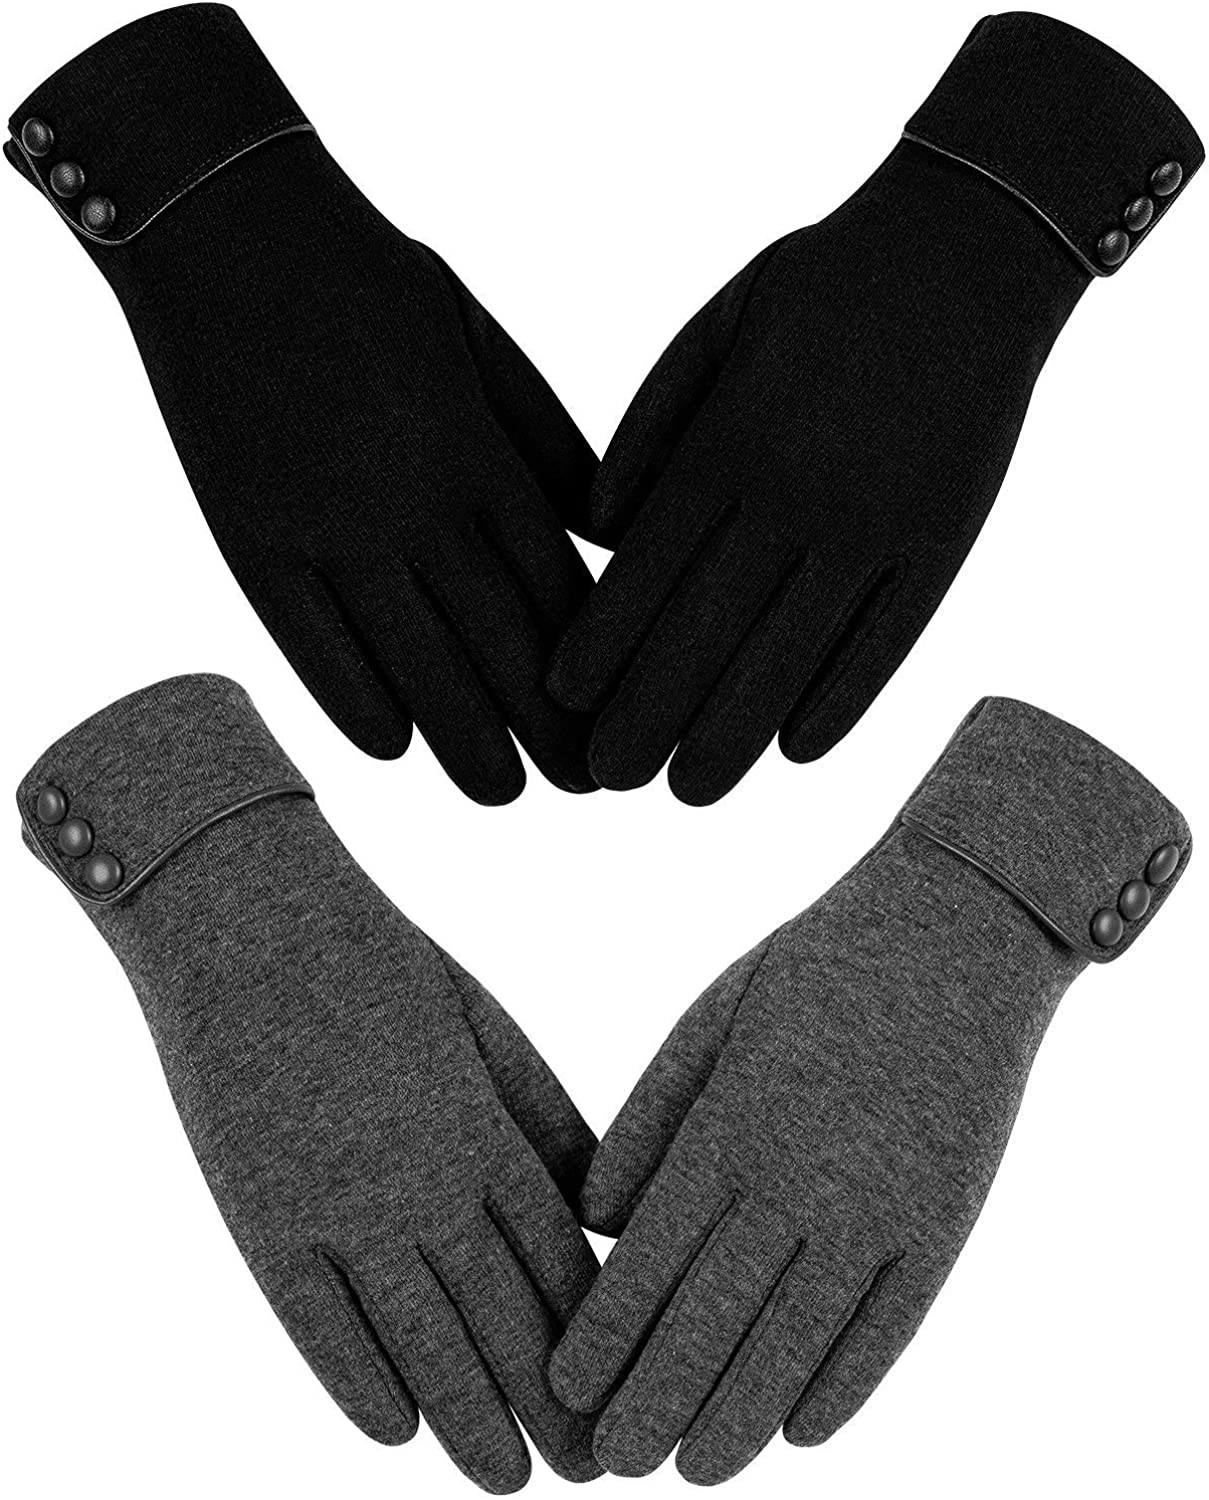 Womens Winter Warm Gloves, Touchscreen Texting Fleece Lined Windproof Driving Gloves Hand Warmer By Alepo (Black&Dark Gray-M)